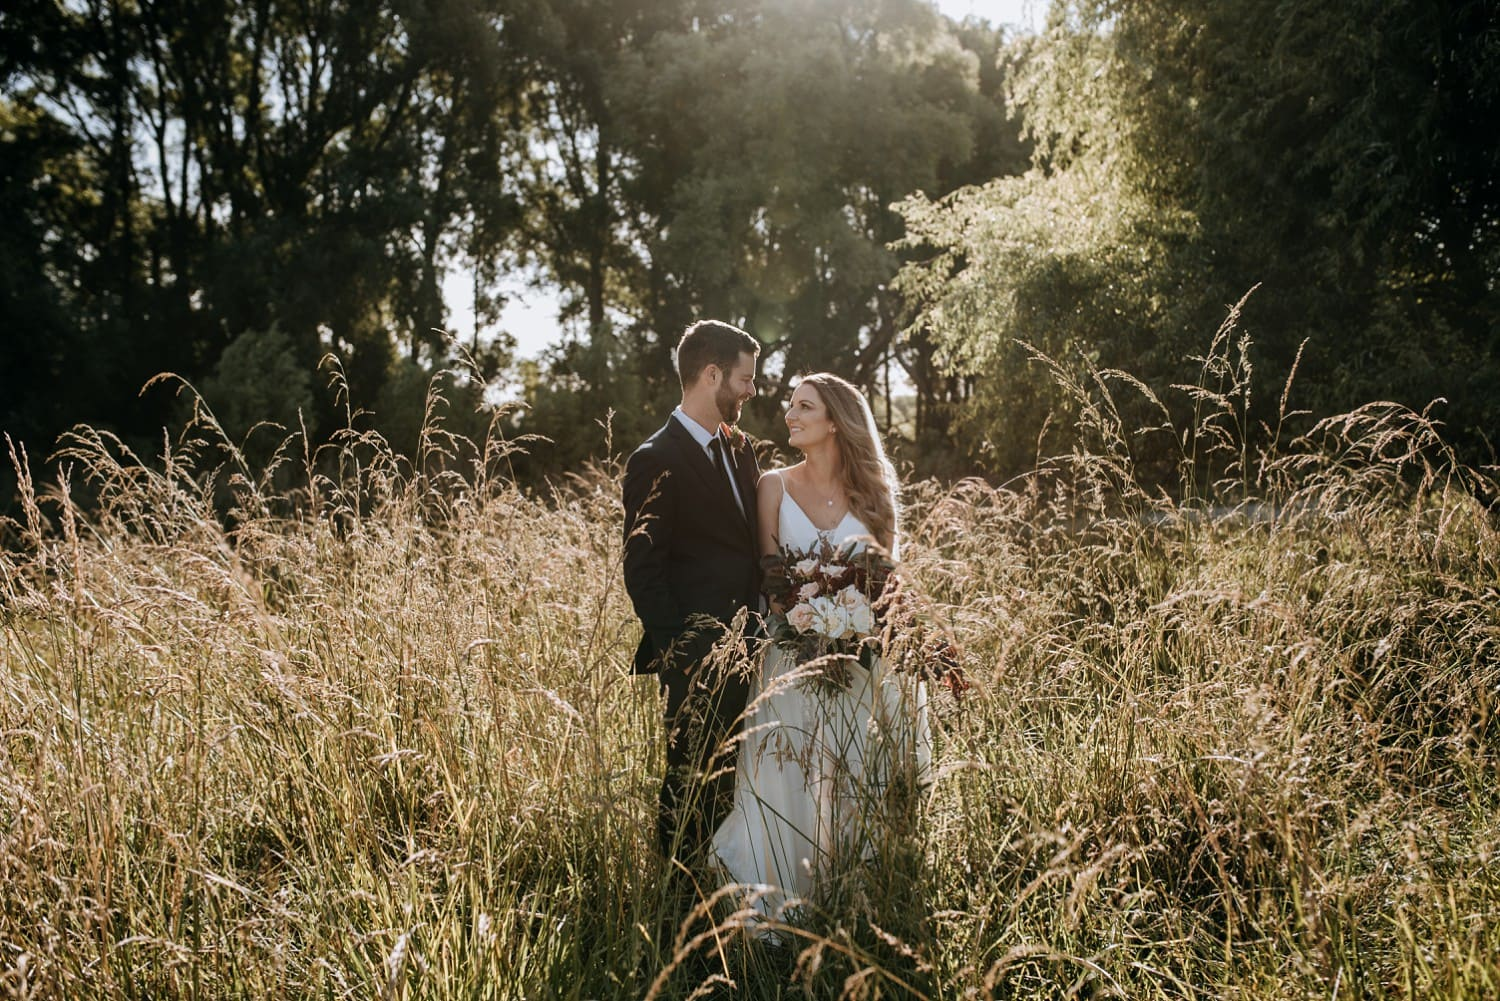 Steph & Matt - The Old Church, Hawke's Bay, Wedding | www.meredithlord.com